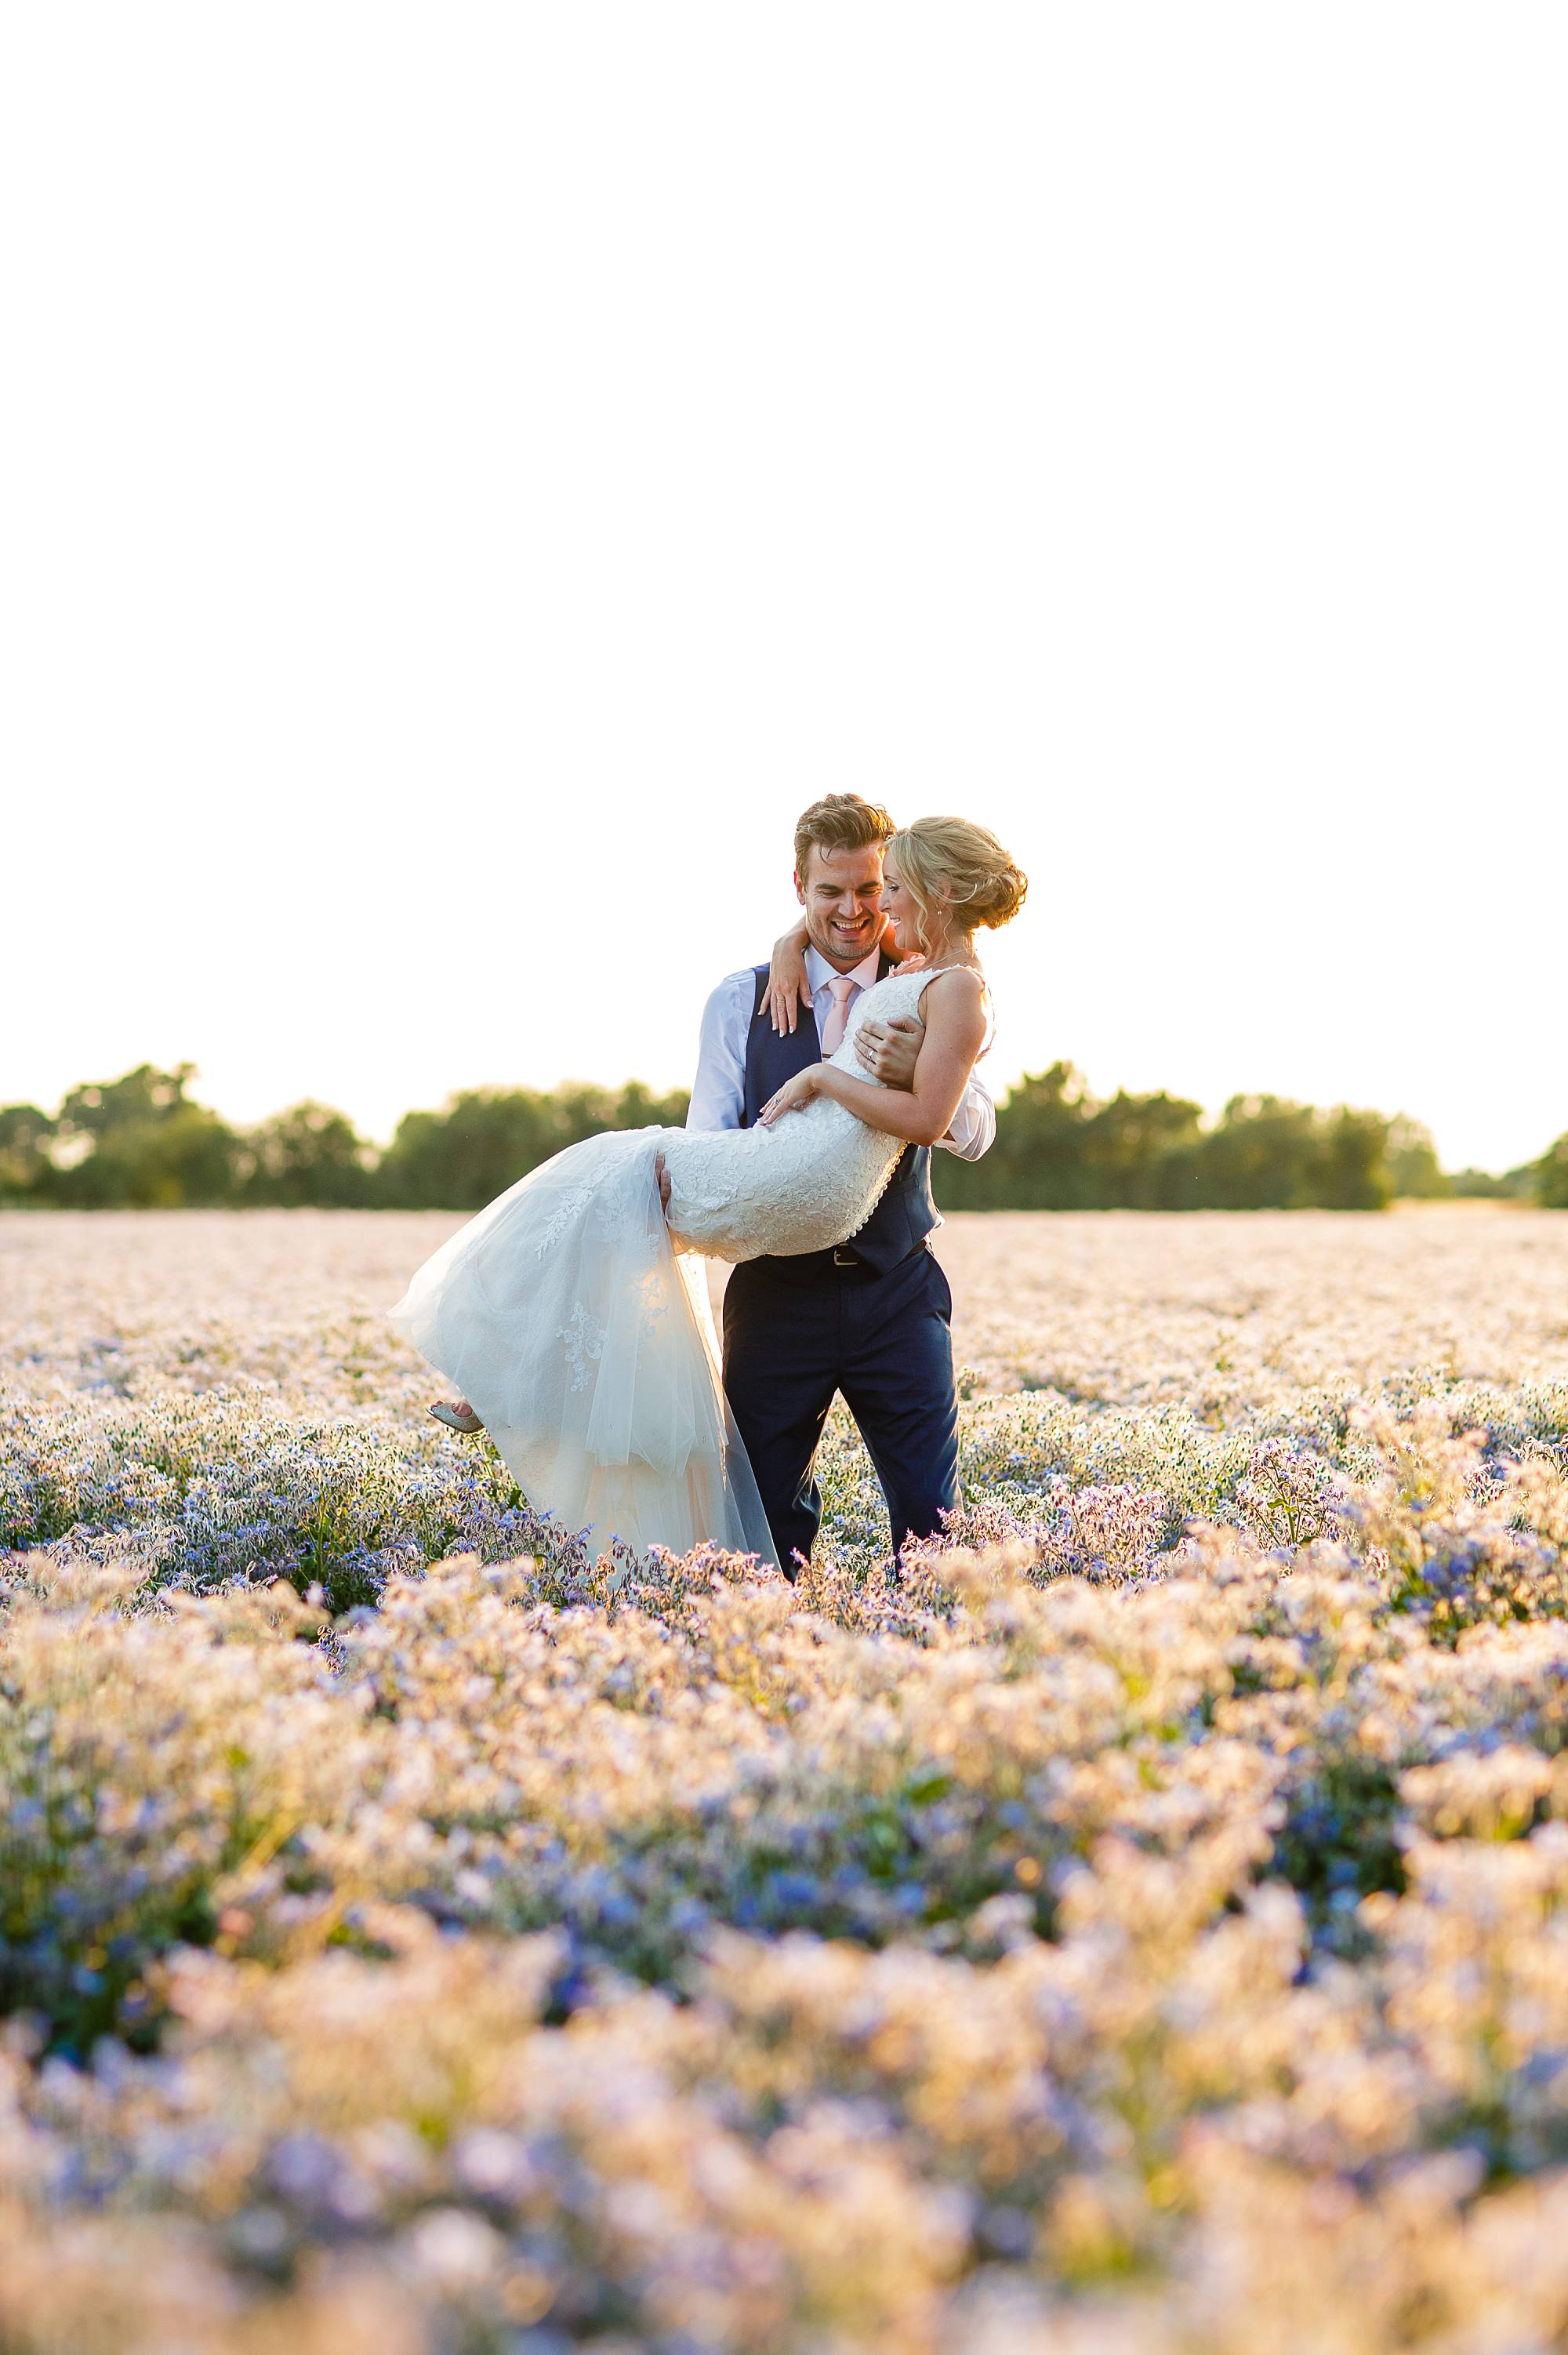 Houchins Essex Wedding Photographer_0093.jpg